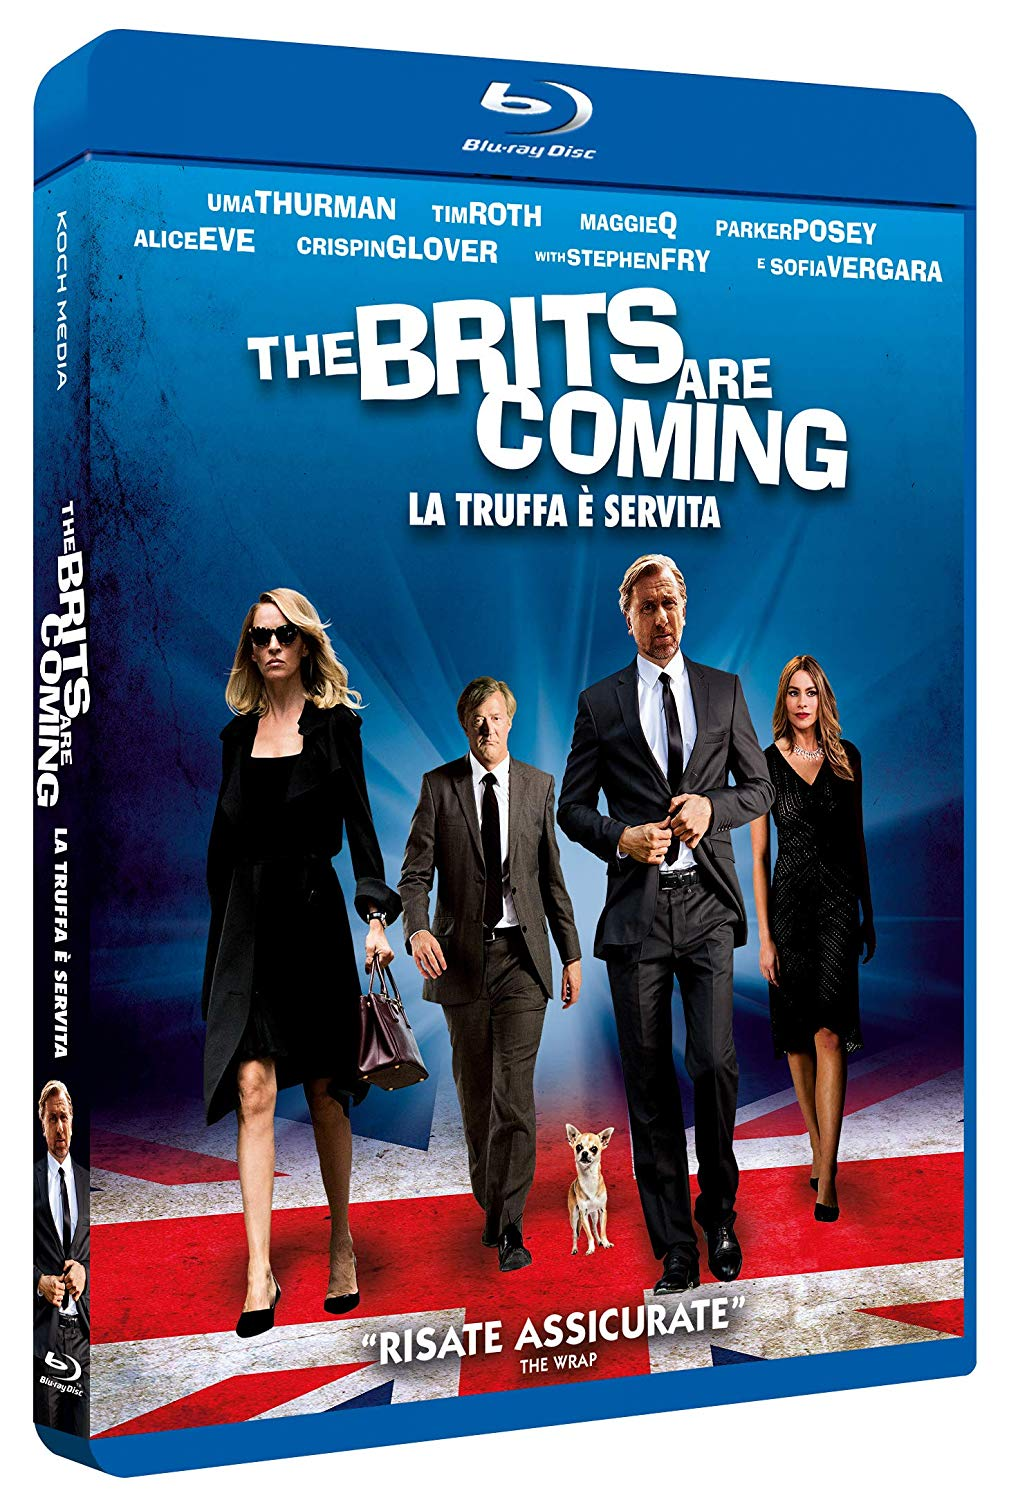 THE BRITS ARE COMING - LA TRUFFA E' SERVITA - BLU RAY